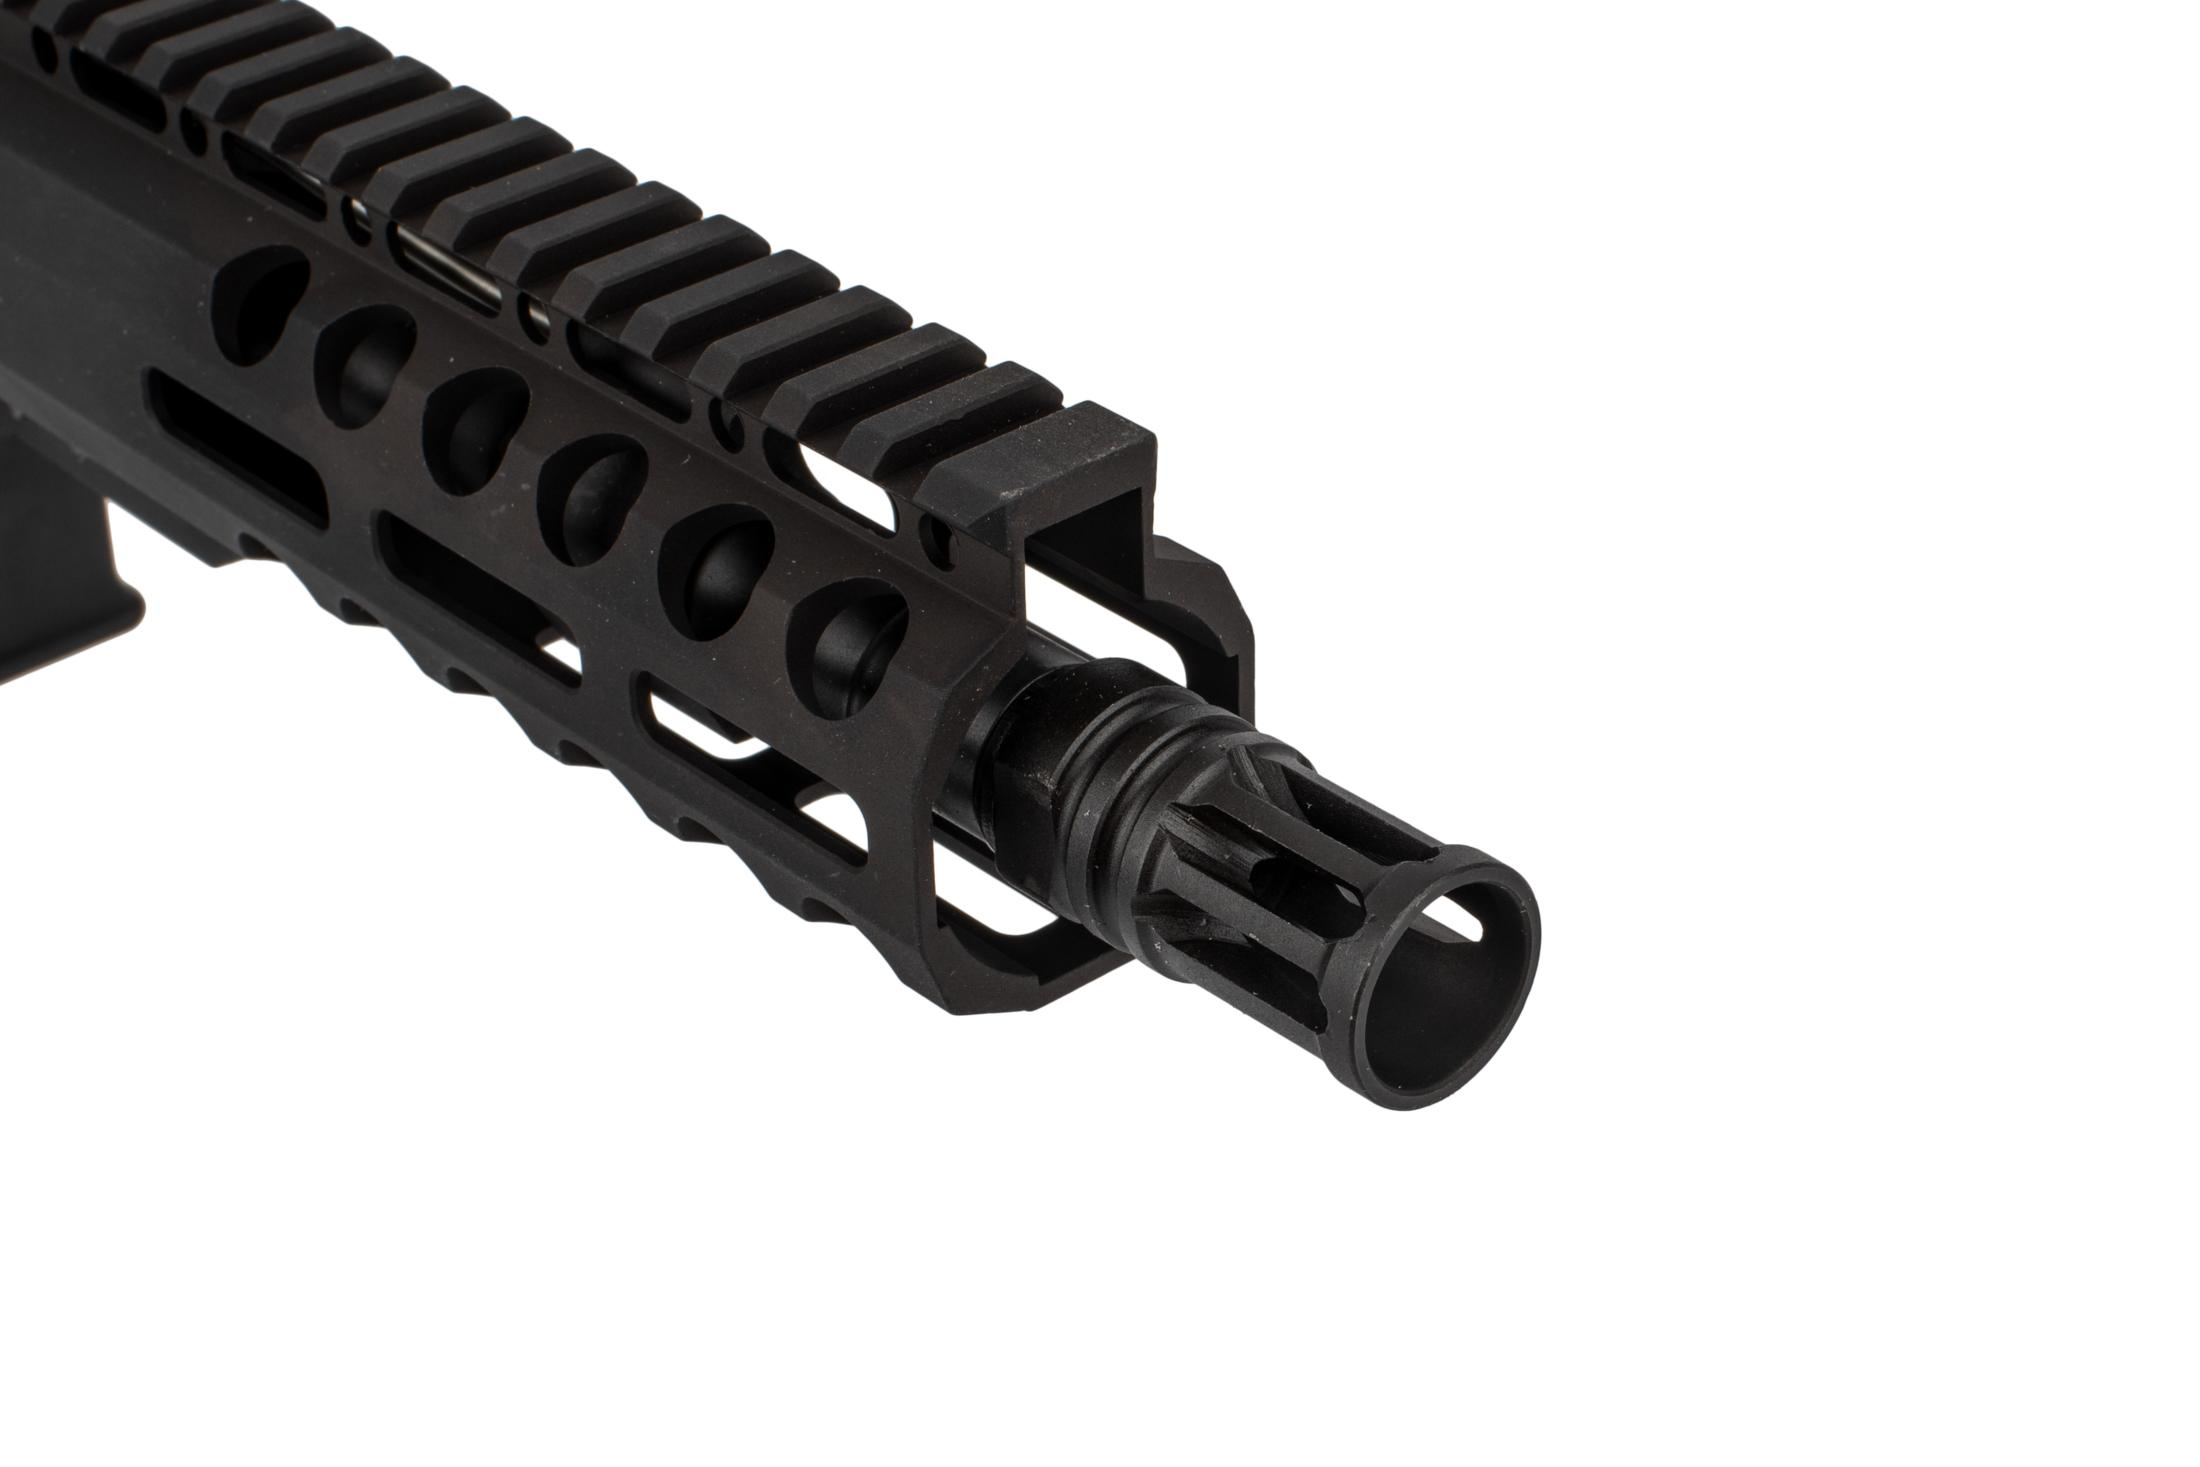 Radical Firearms 5.56 NAT O AR pistol with 7.5 barrel is threaded 1/2x28 with an A2 flash hider, M-LOK rail, and Shockwave 2M brace